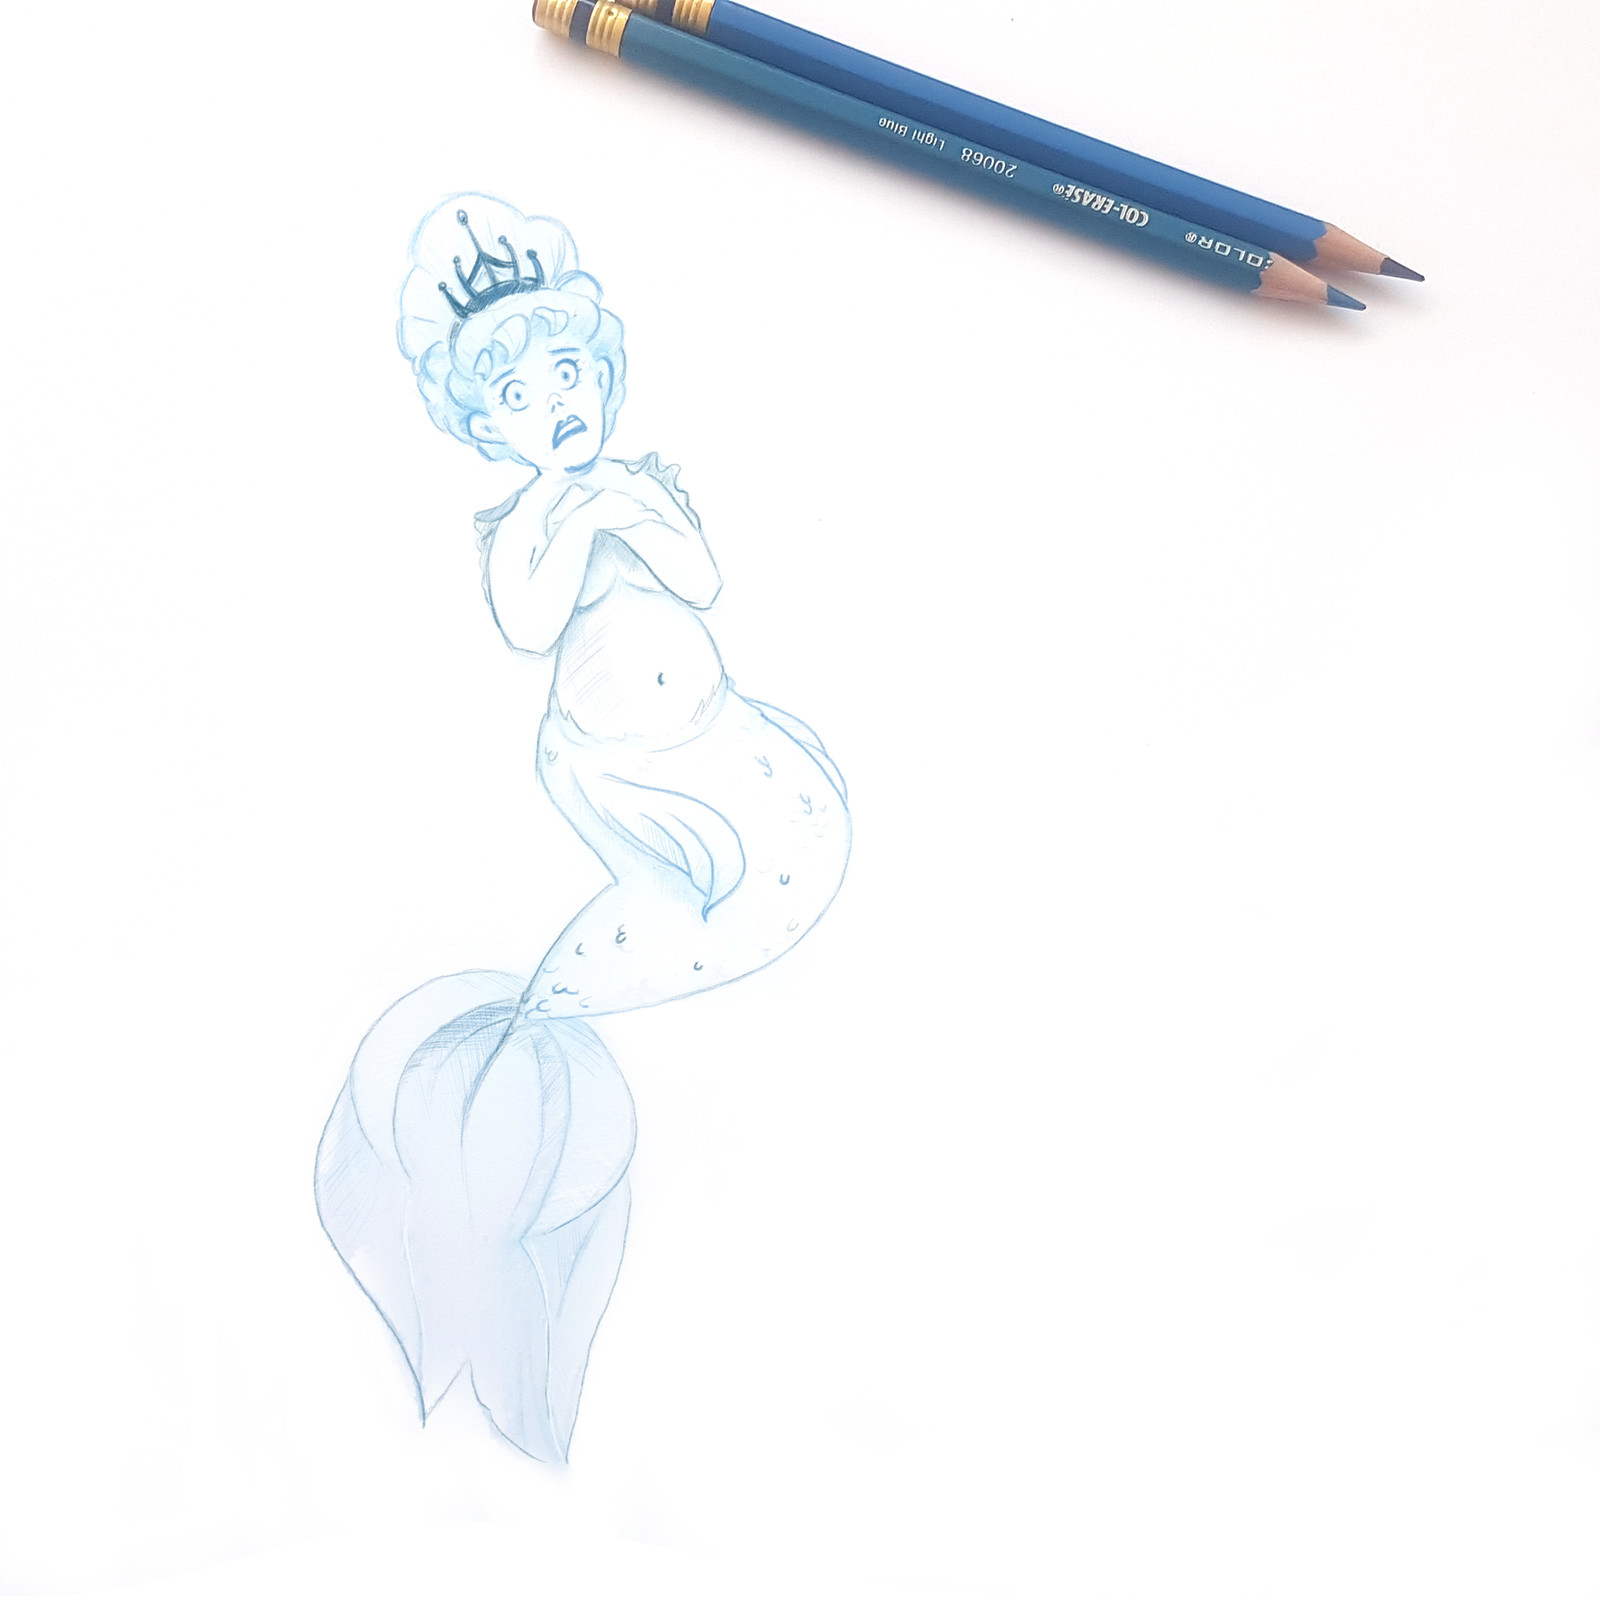 Some mermaids are bashful